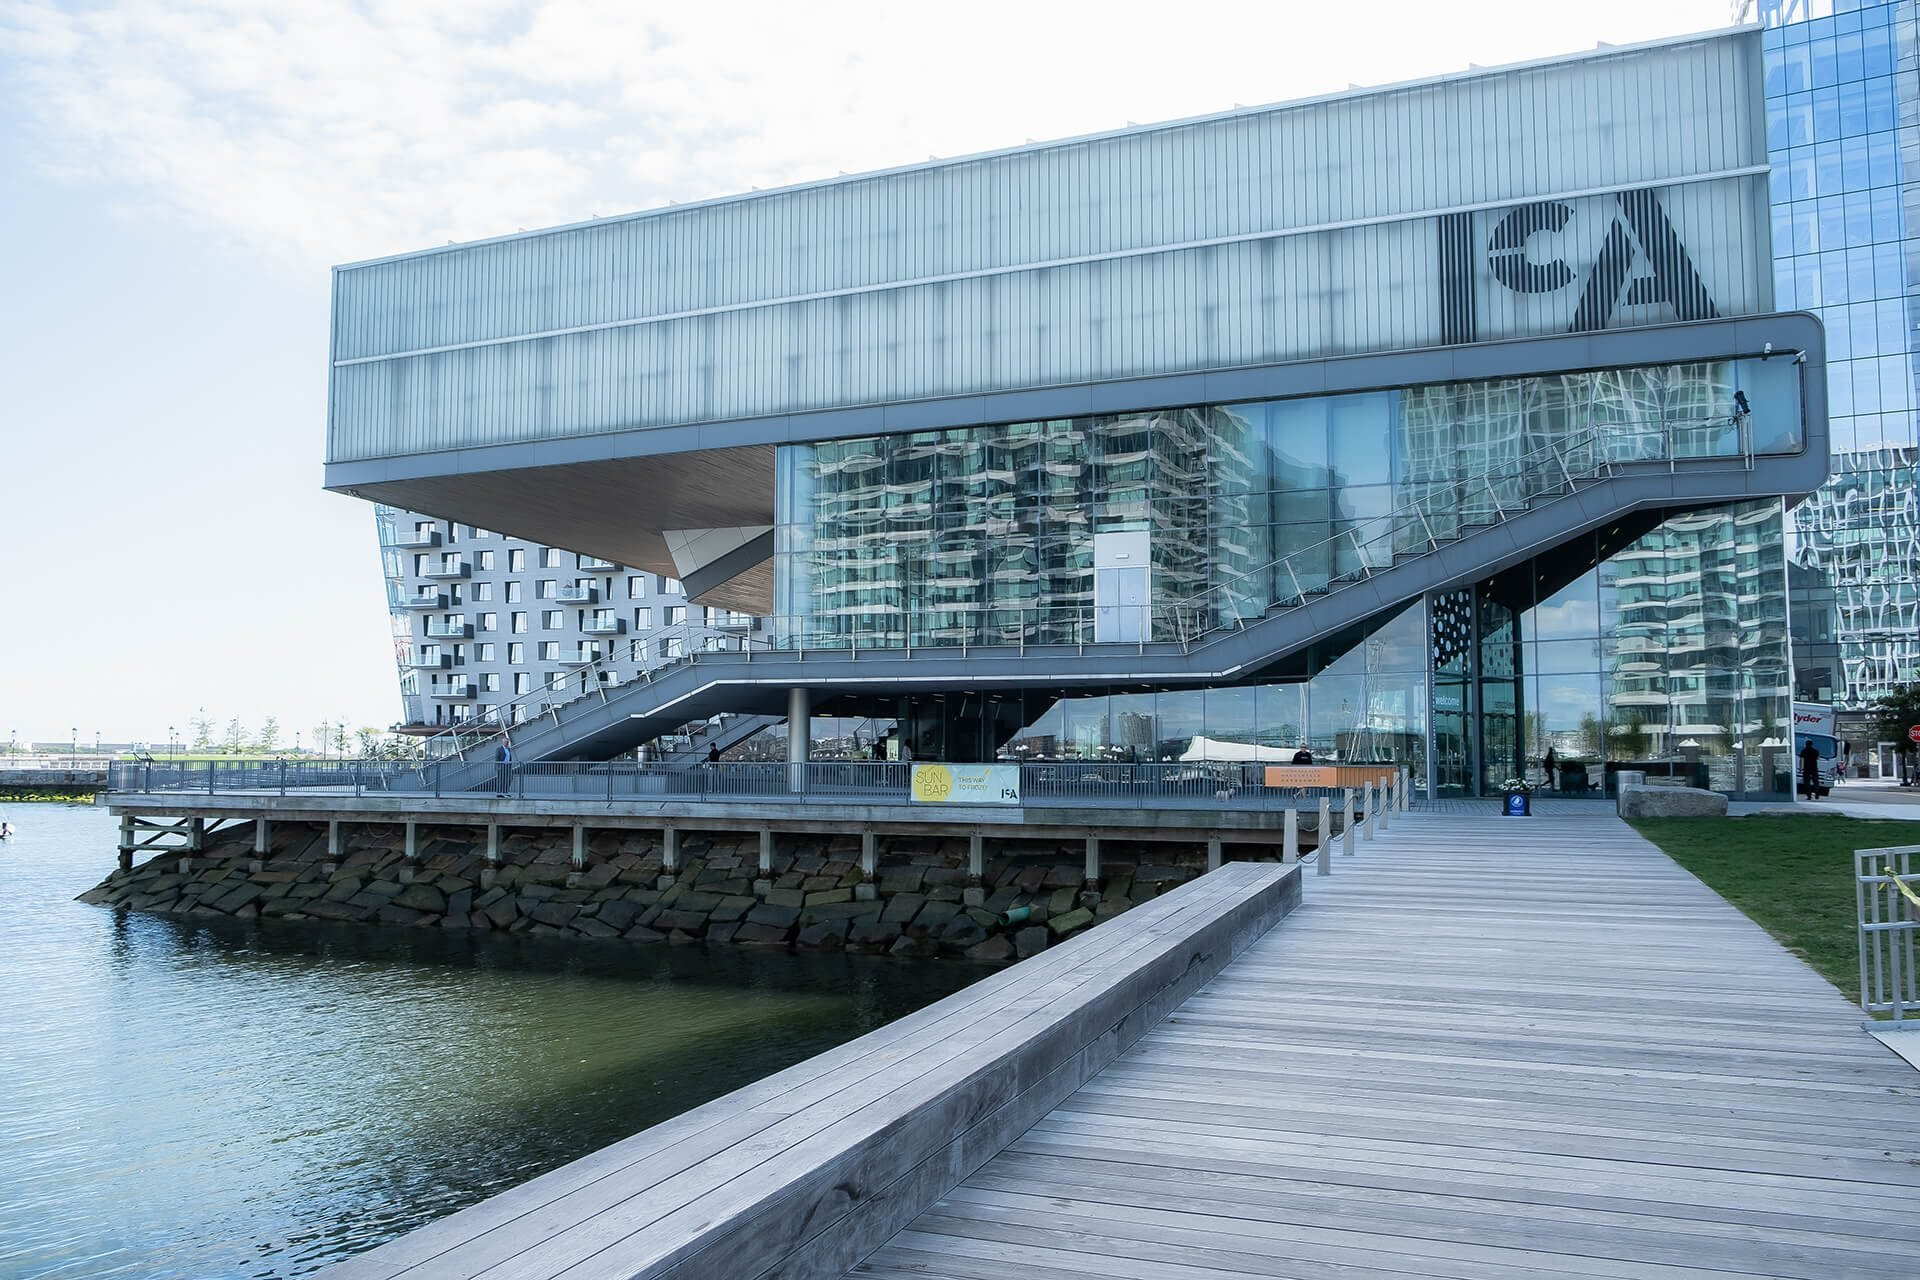 Ideal Visit The Institute of Contemporary Art Location near Ocean at Waterside Place by Windsor, 02210, MA